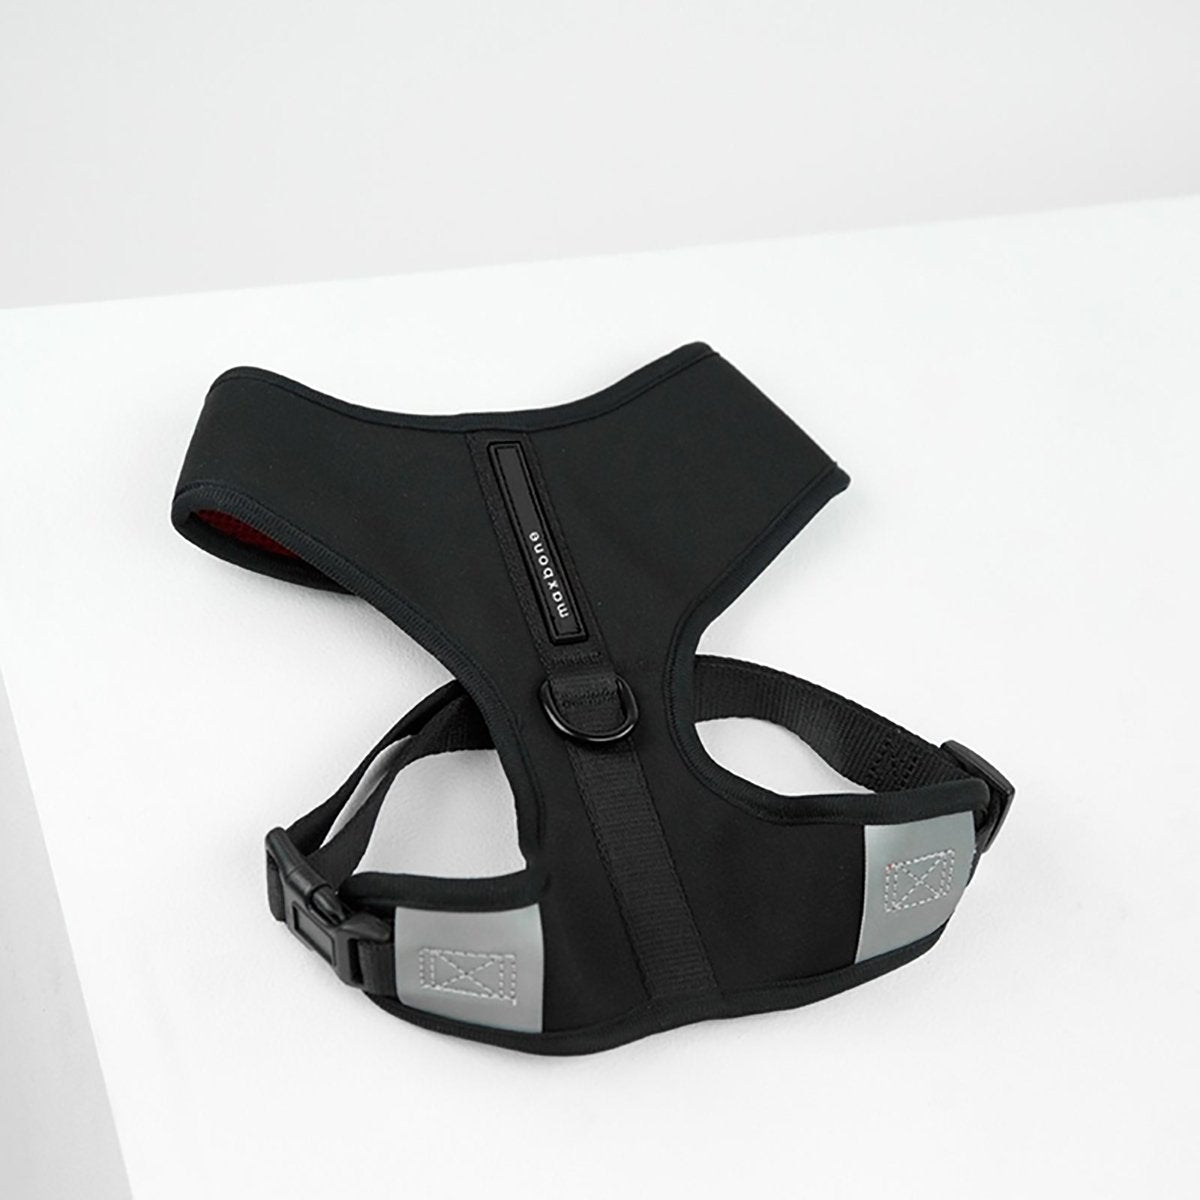 Dog Sports Harness